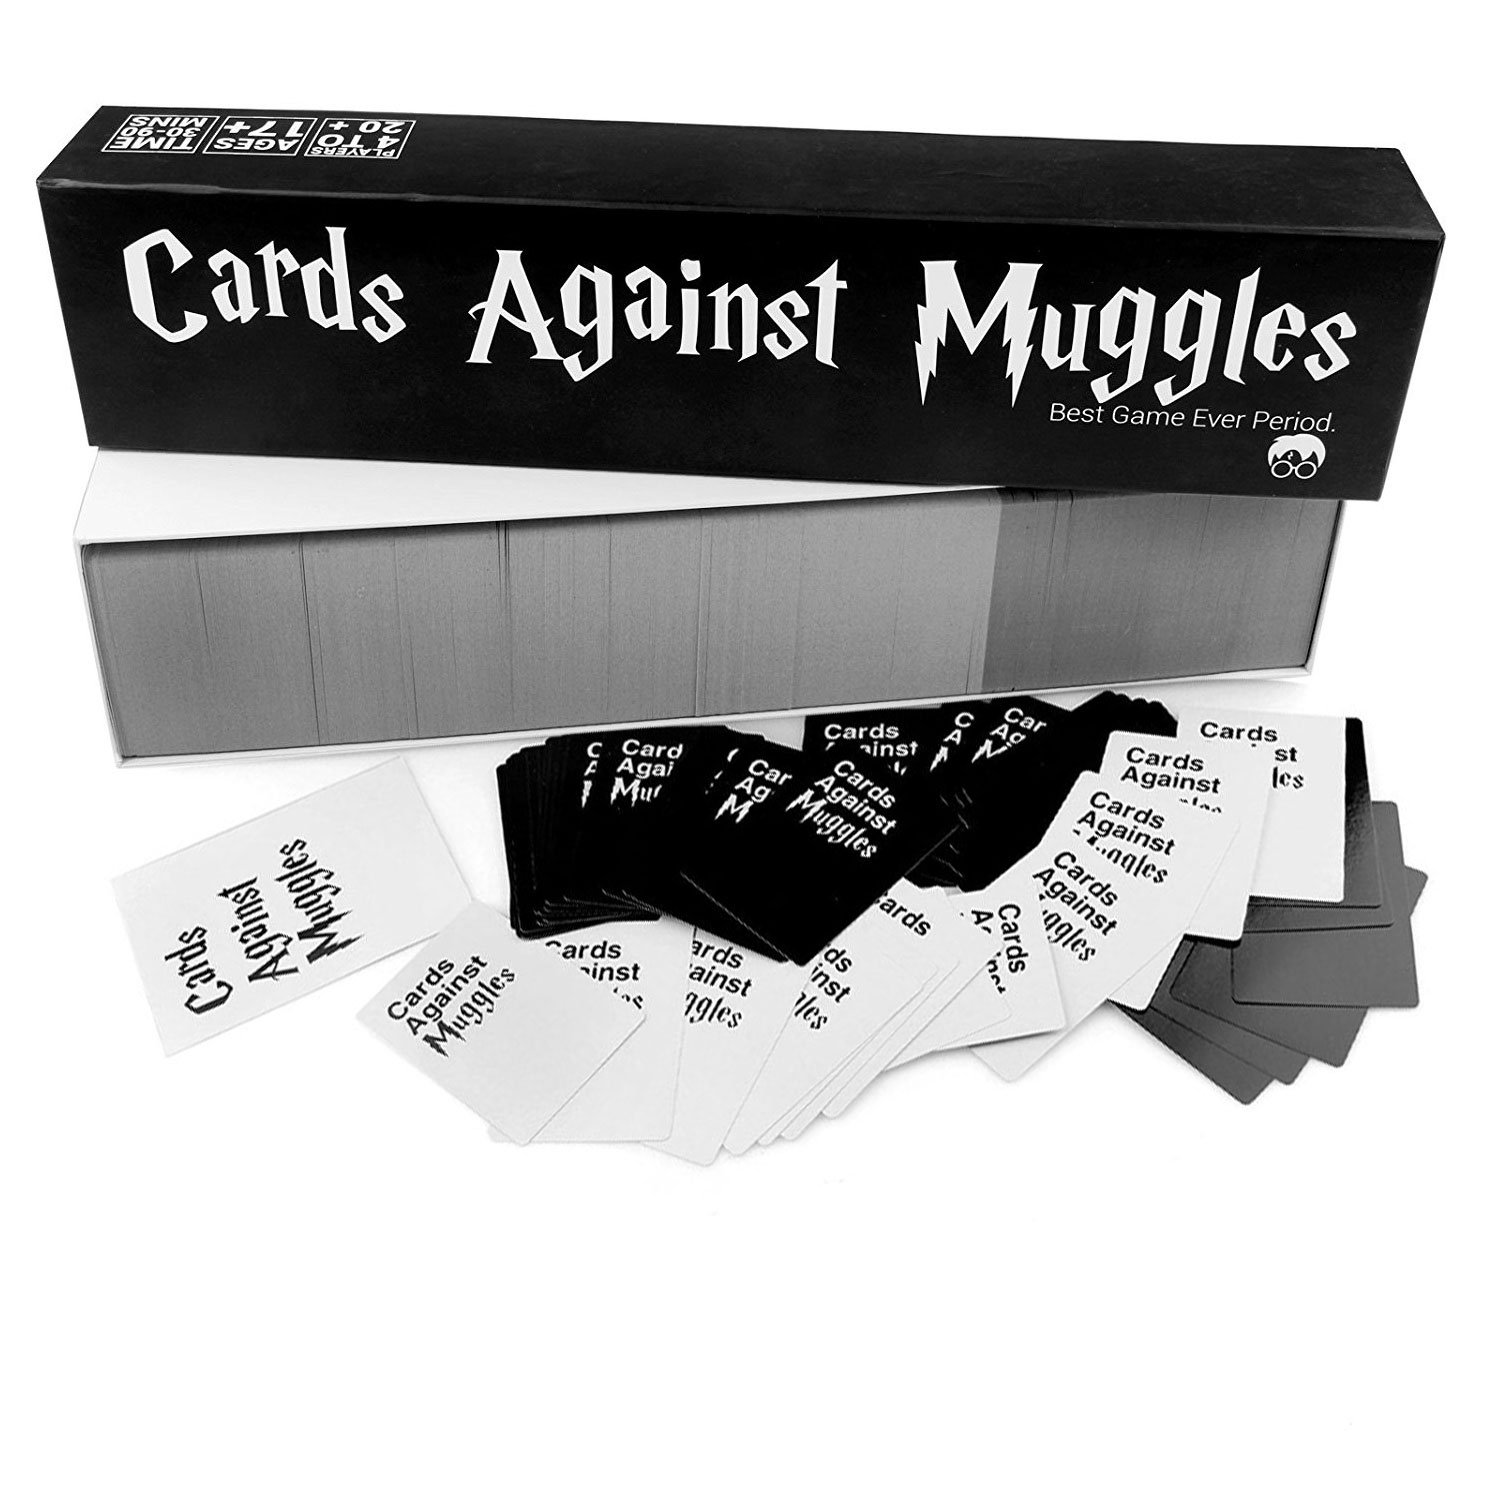 Cards Against Mugls:Best Game Ever Period